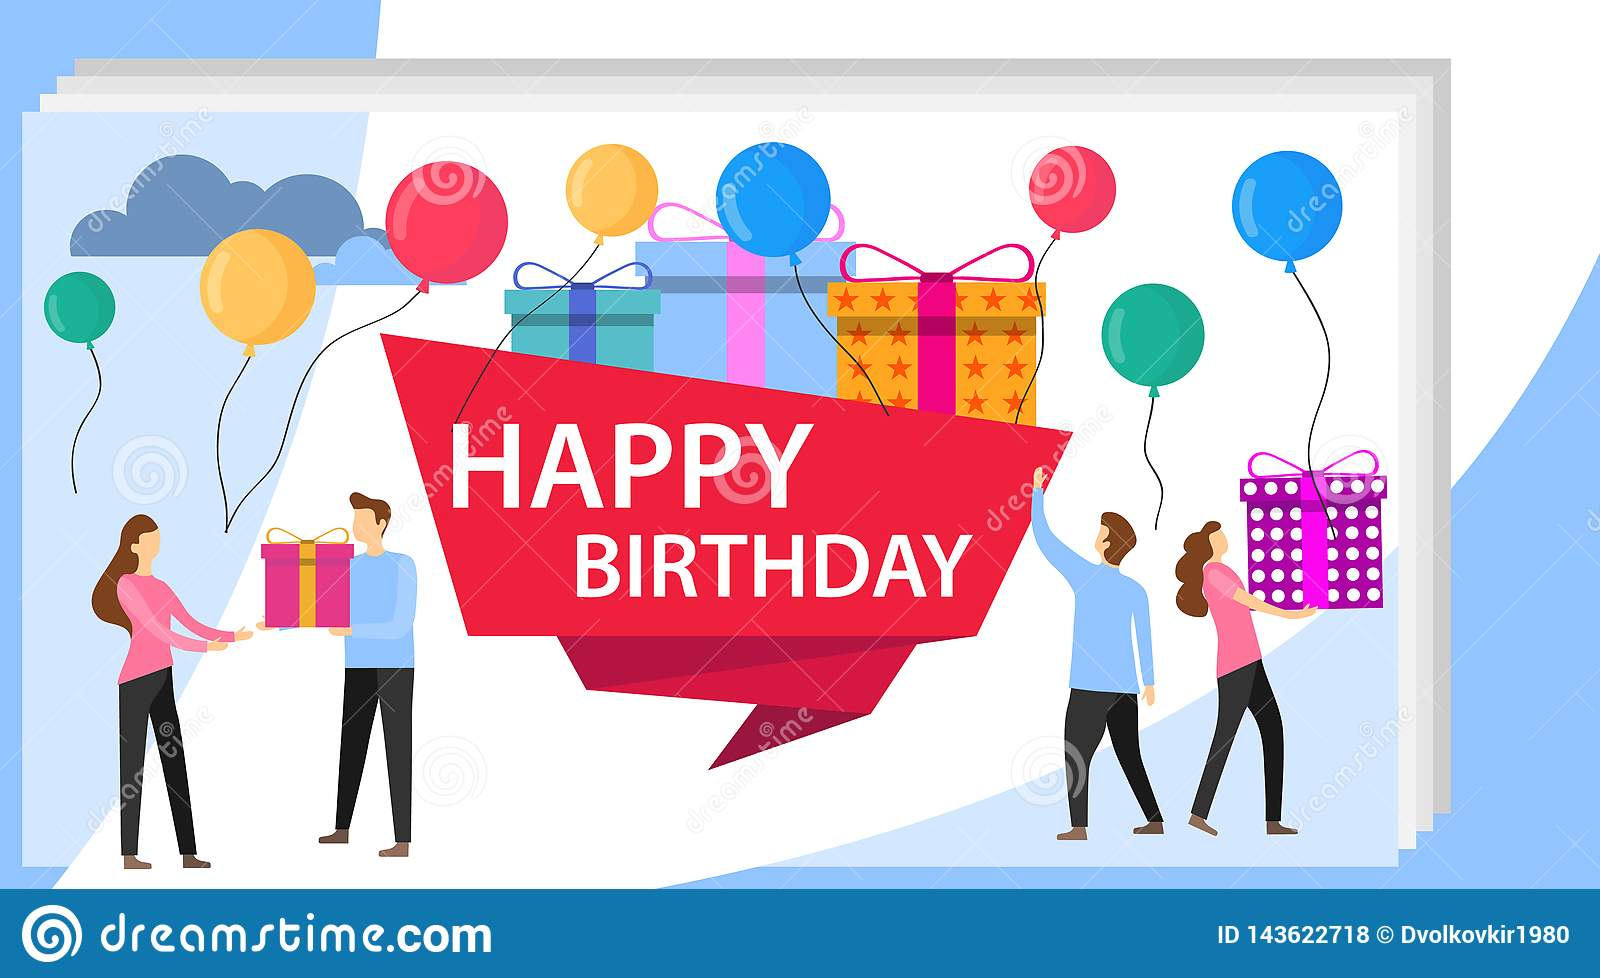 Happy Birthday Party Celebration With Friend Vector Illustration Of A Greeting Card